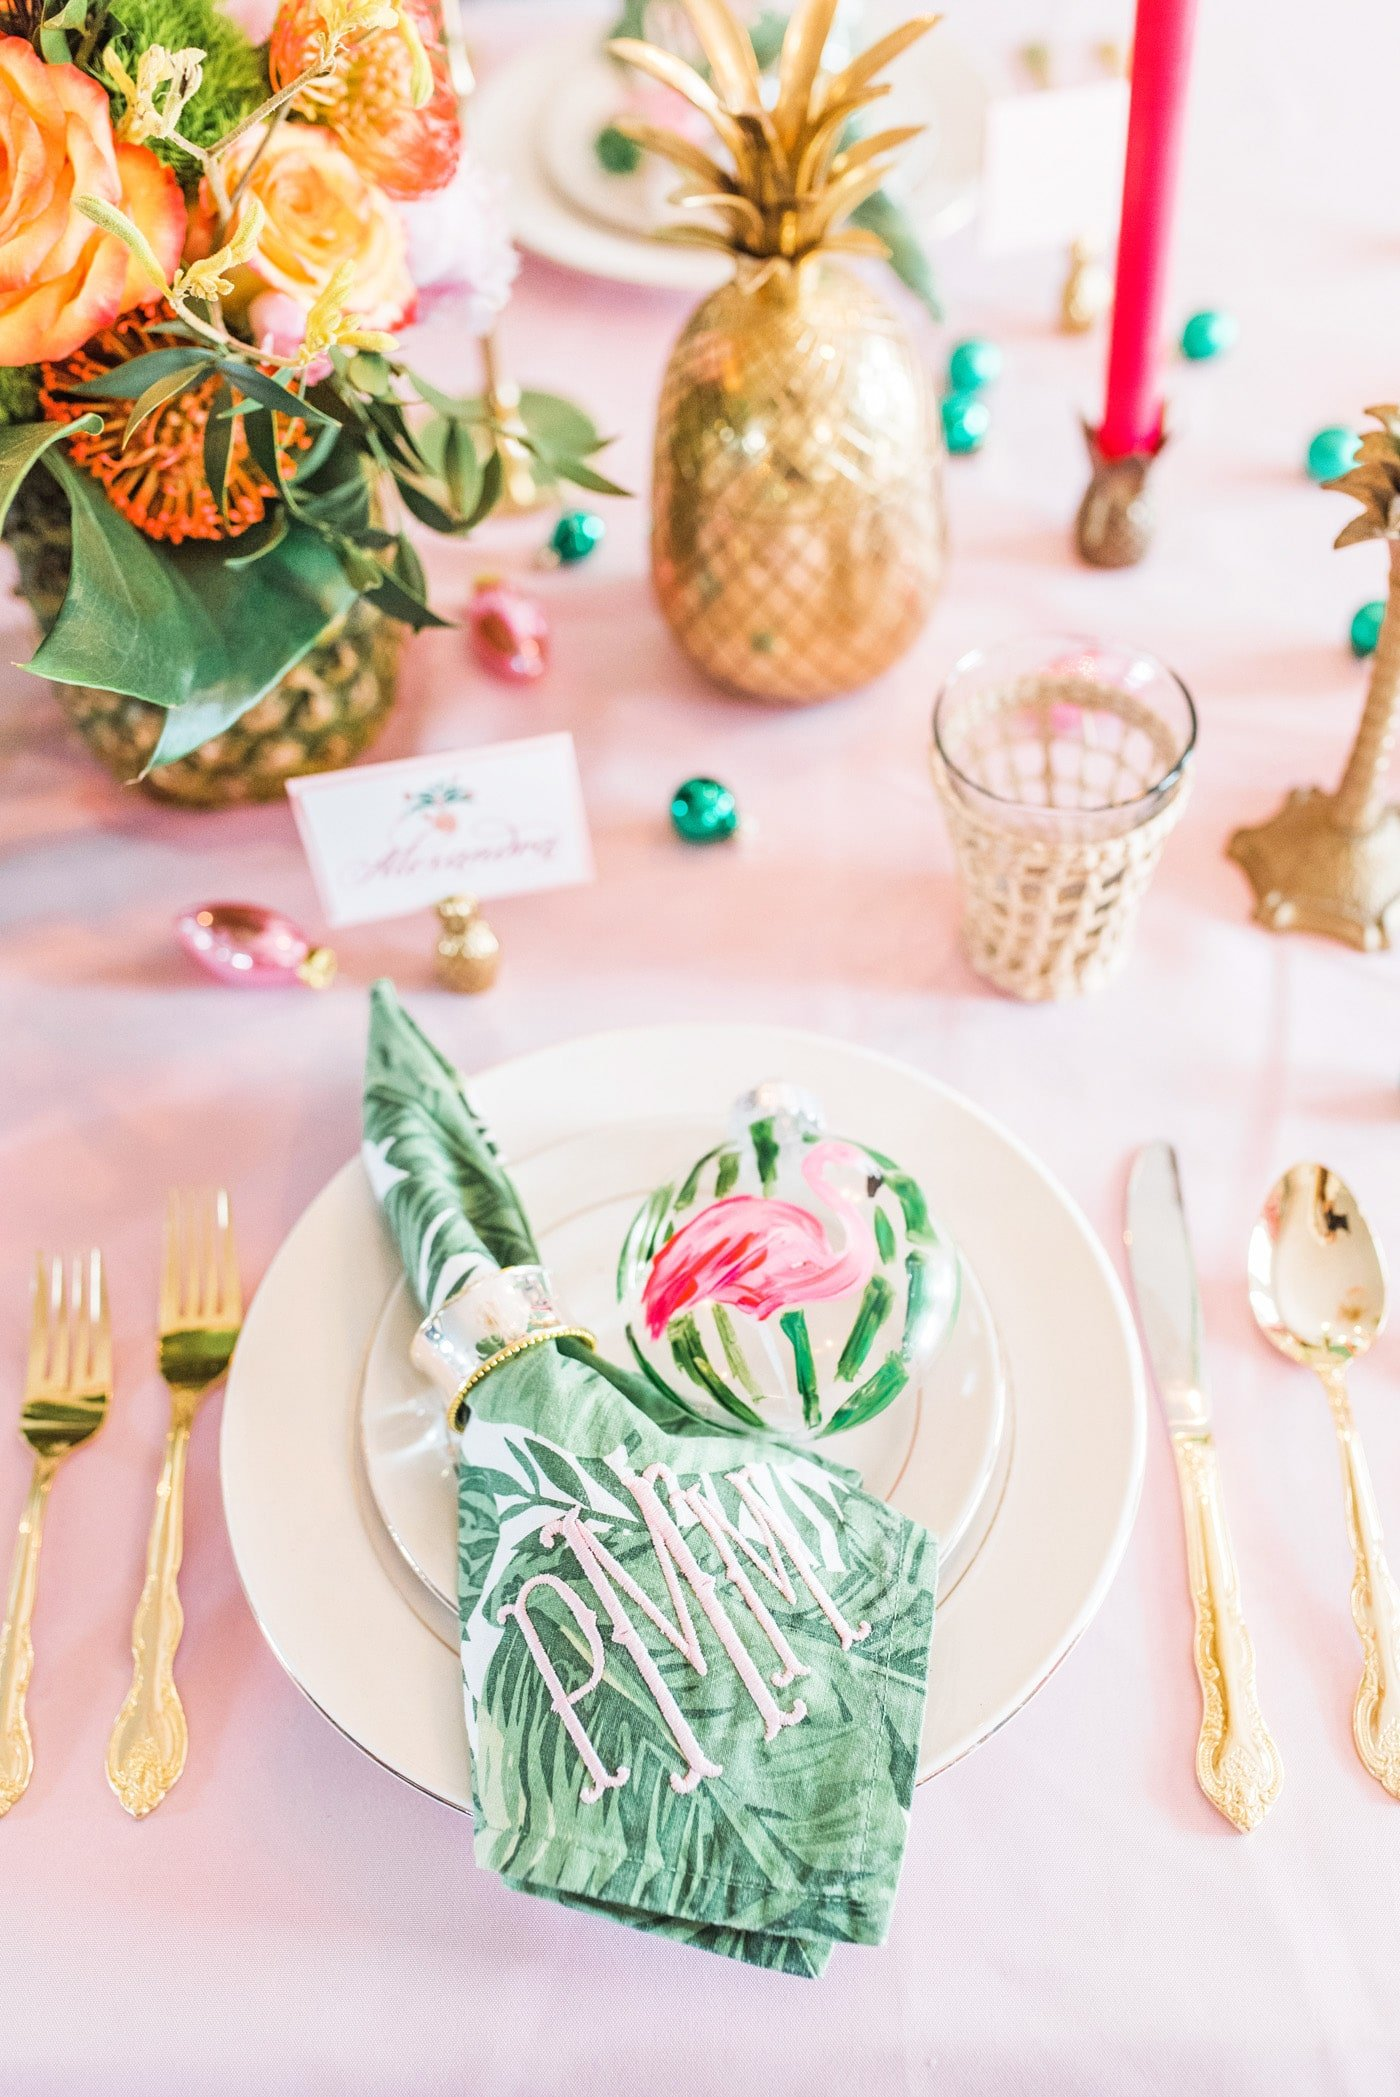 Deck The Palms With a Festive Holiday Brunch